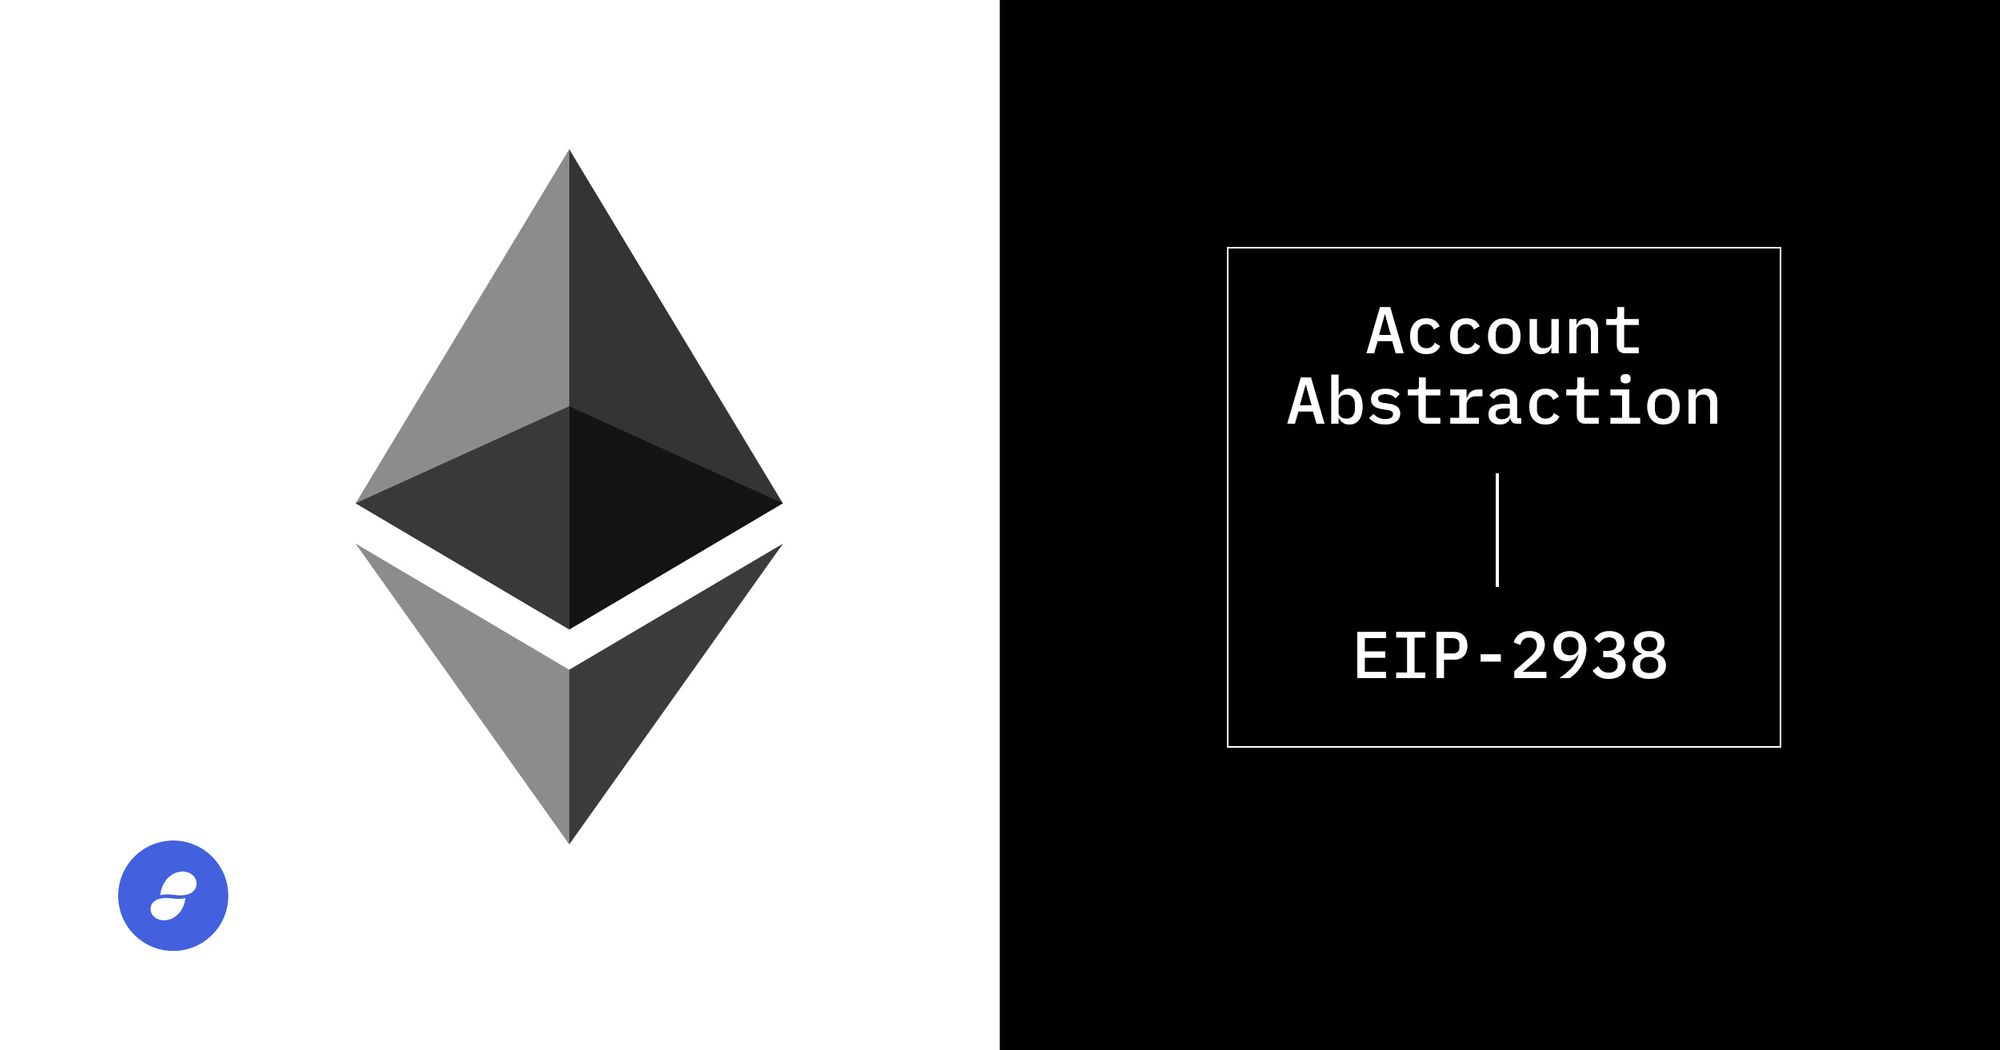 Account Abstraction (EIP-2938): Why & What